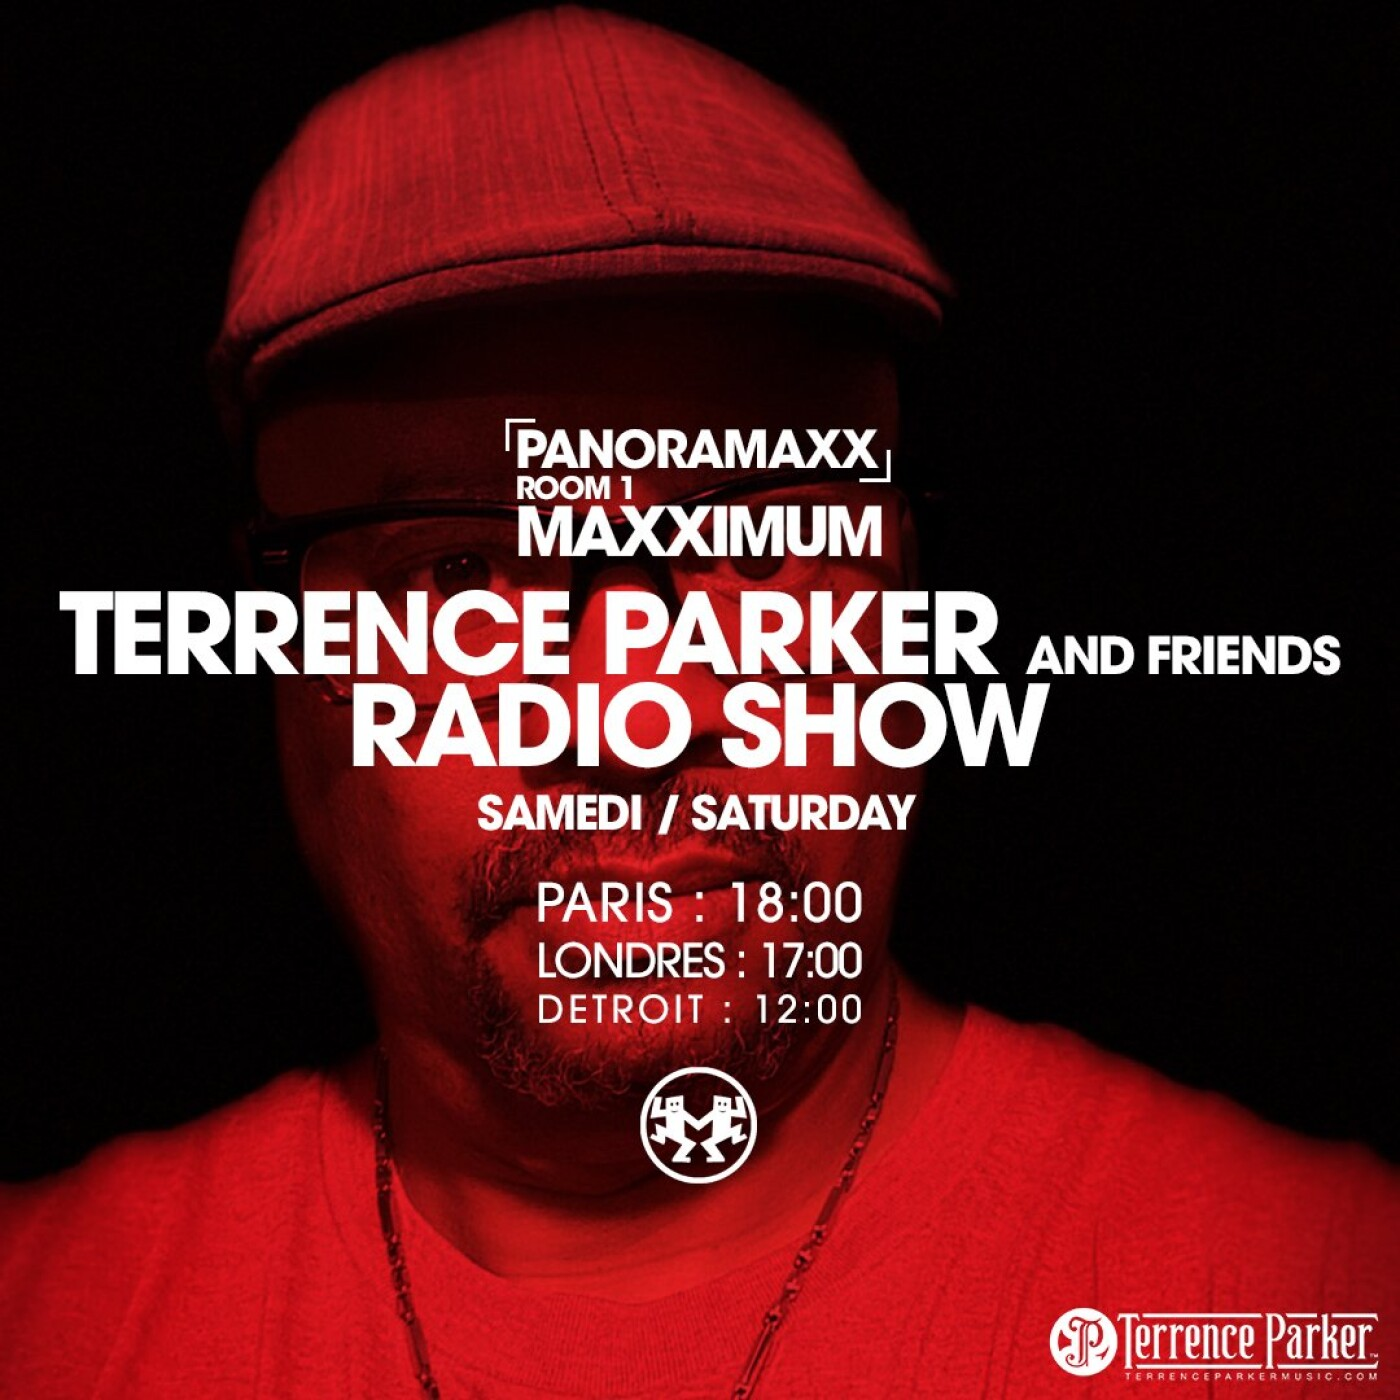 PANORAMAXX : TERRENCE PARKER & FRIENDS